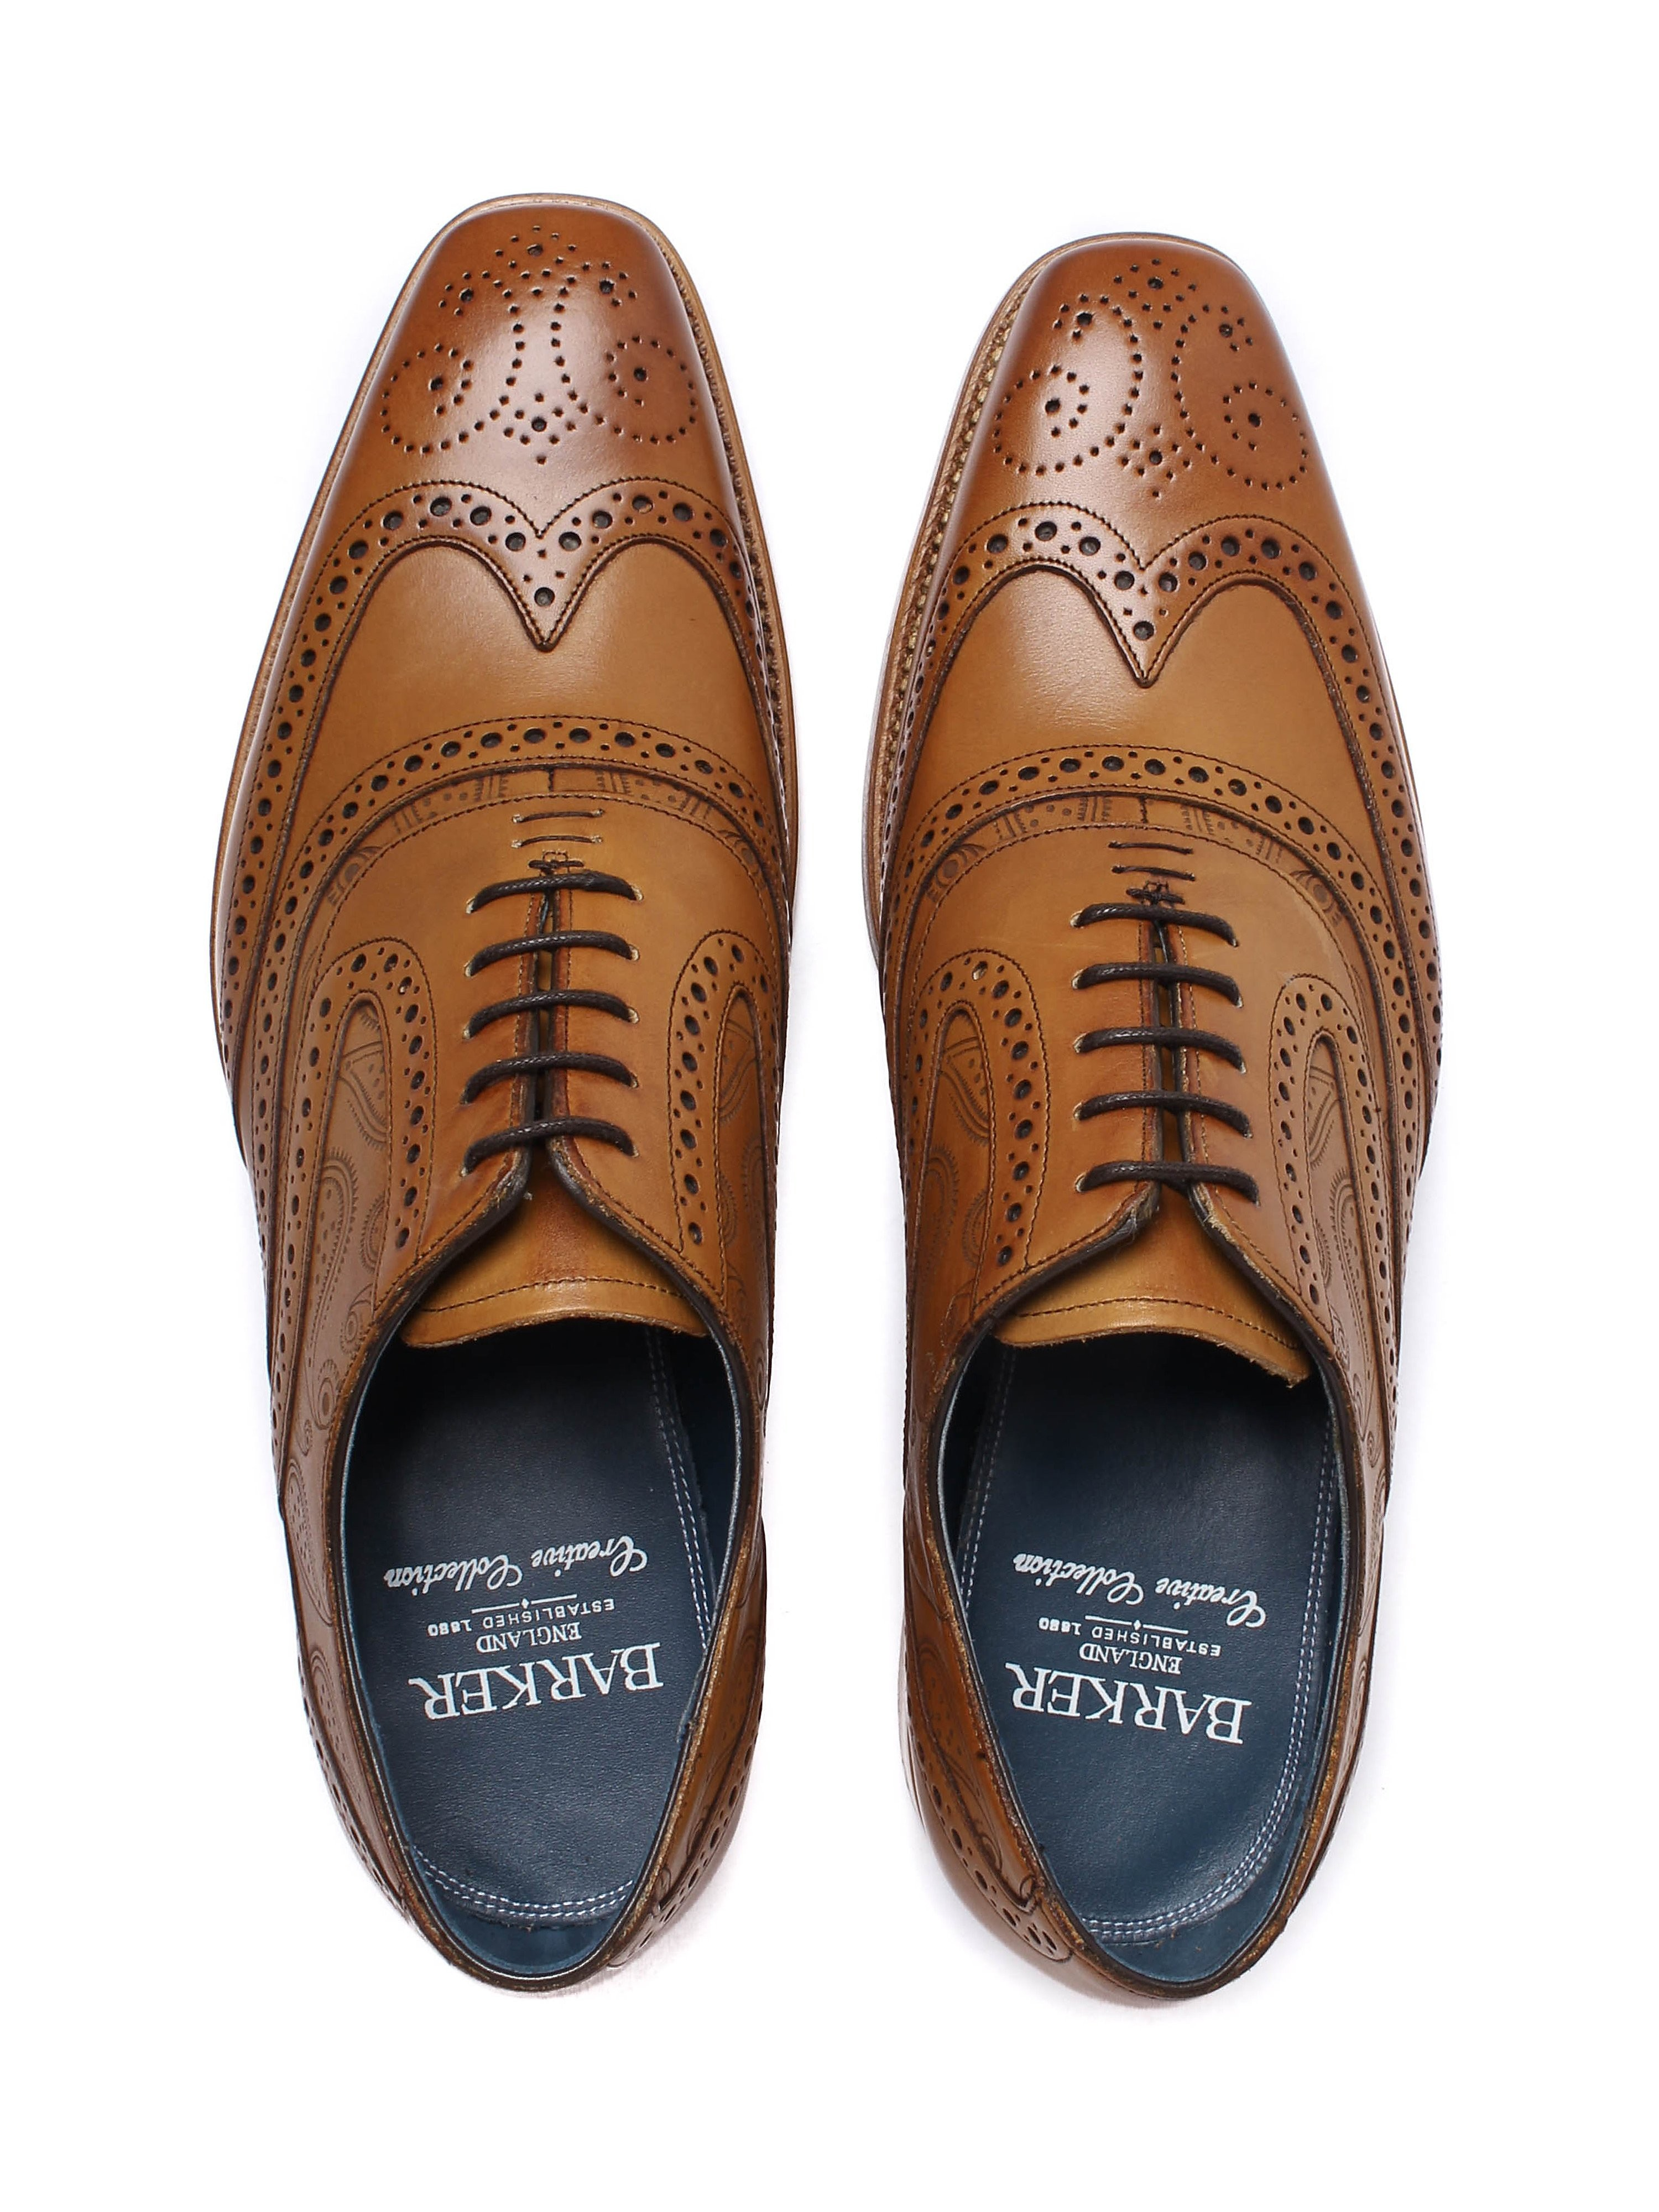 Barker Men's McClean Paisley Leather Oxford Brogues - Cedar